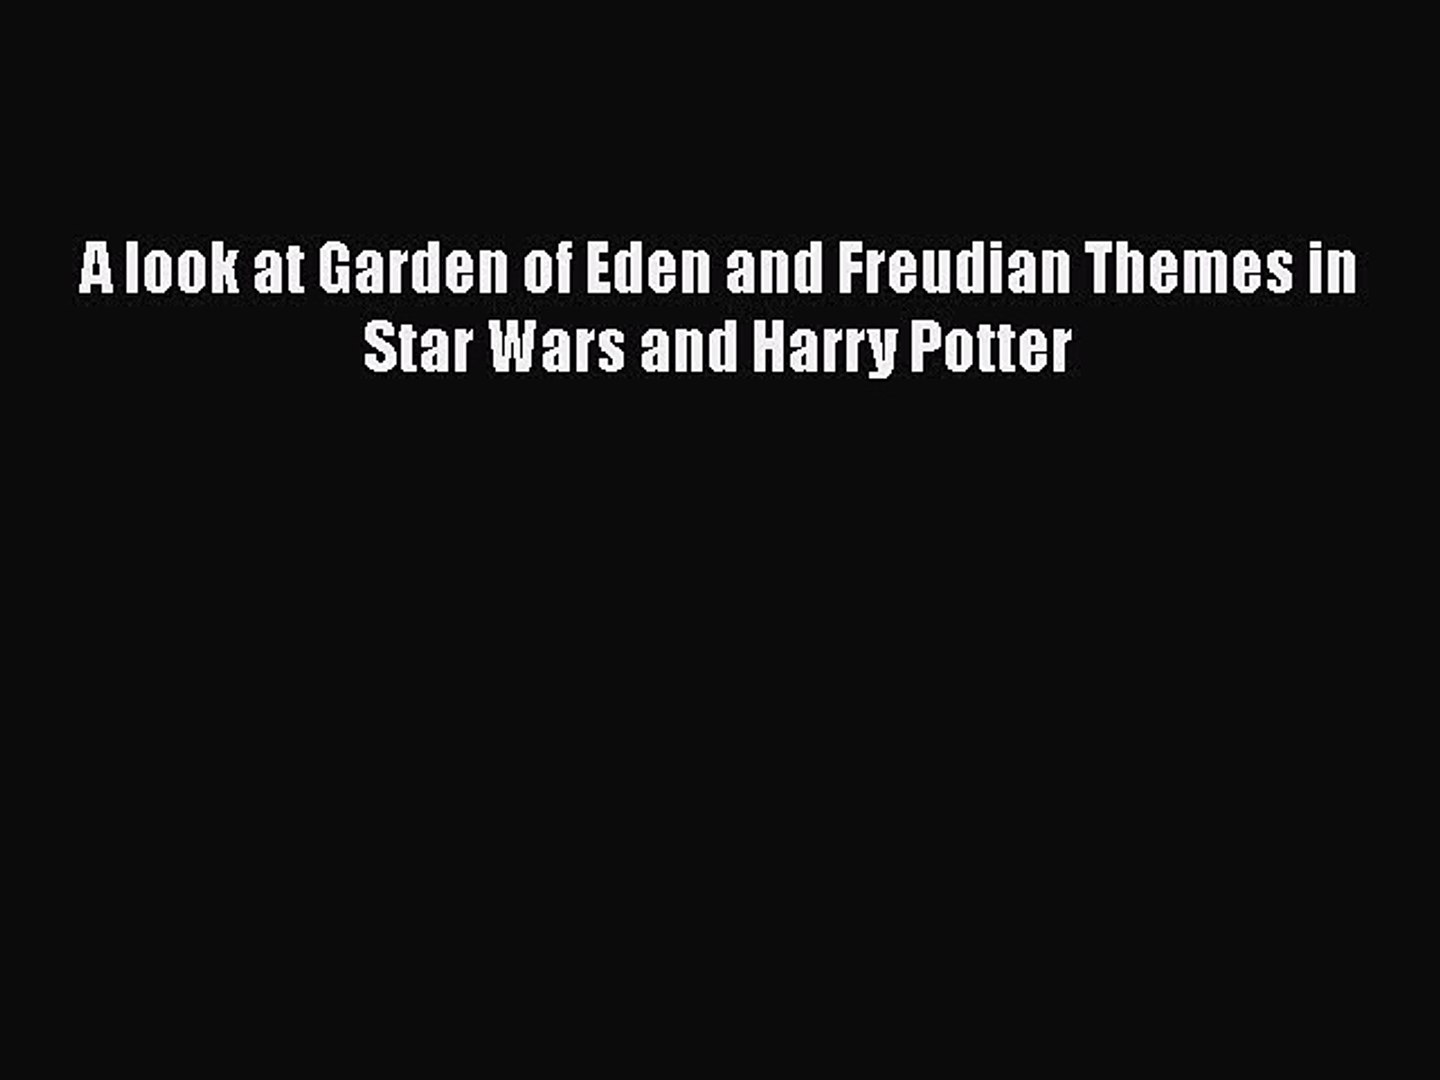 A look at Garden of Eden and Freudian Themes in Star Wars and Harry Potter